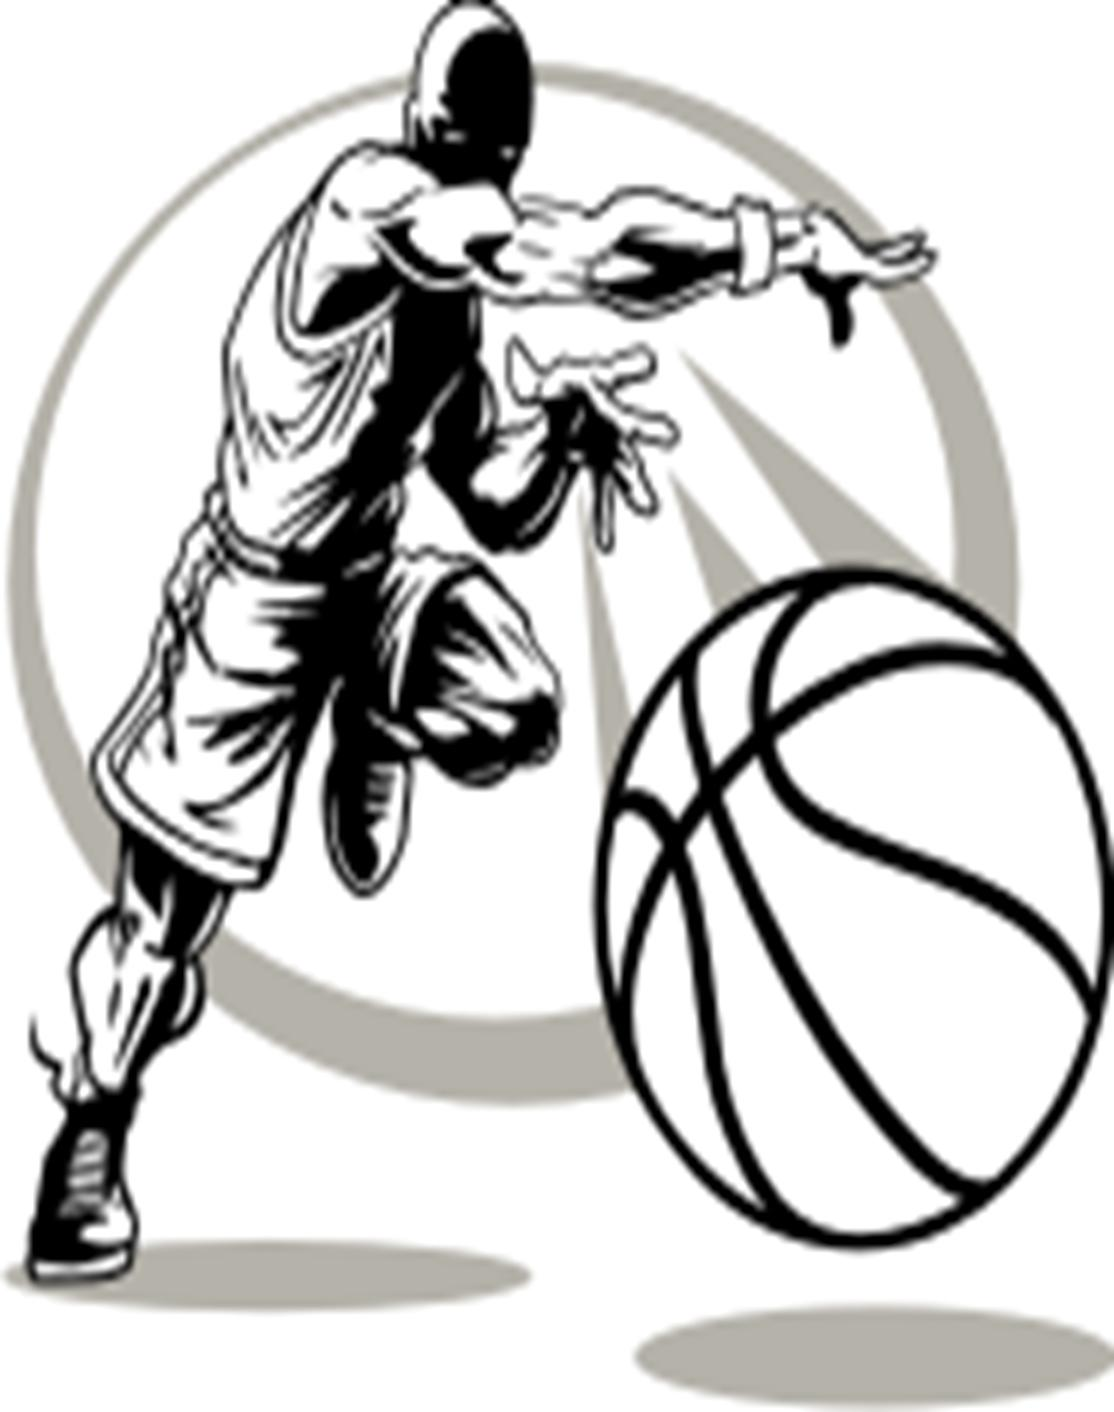 Boys Basketball Clipart Black And White Number 1